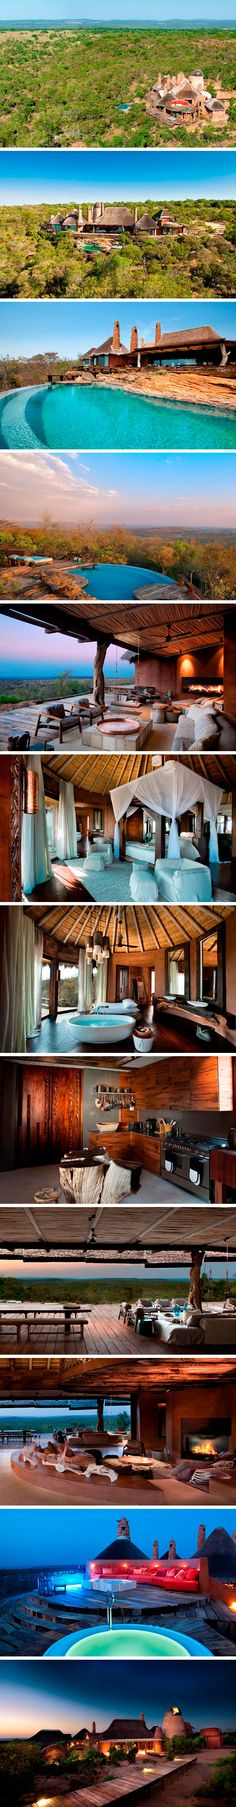 Luxury hotel set in 12,000 acres of African wilderness